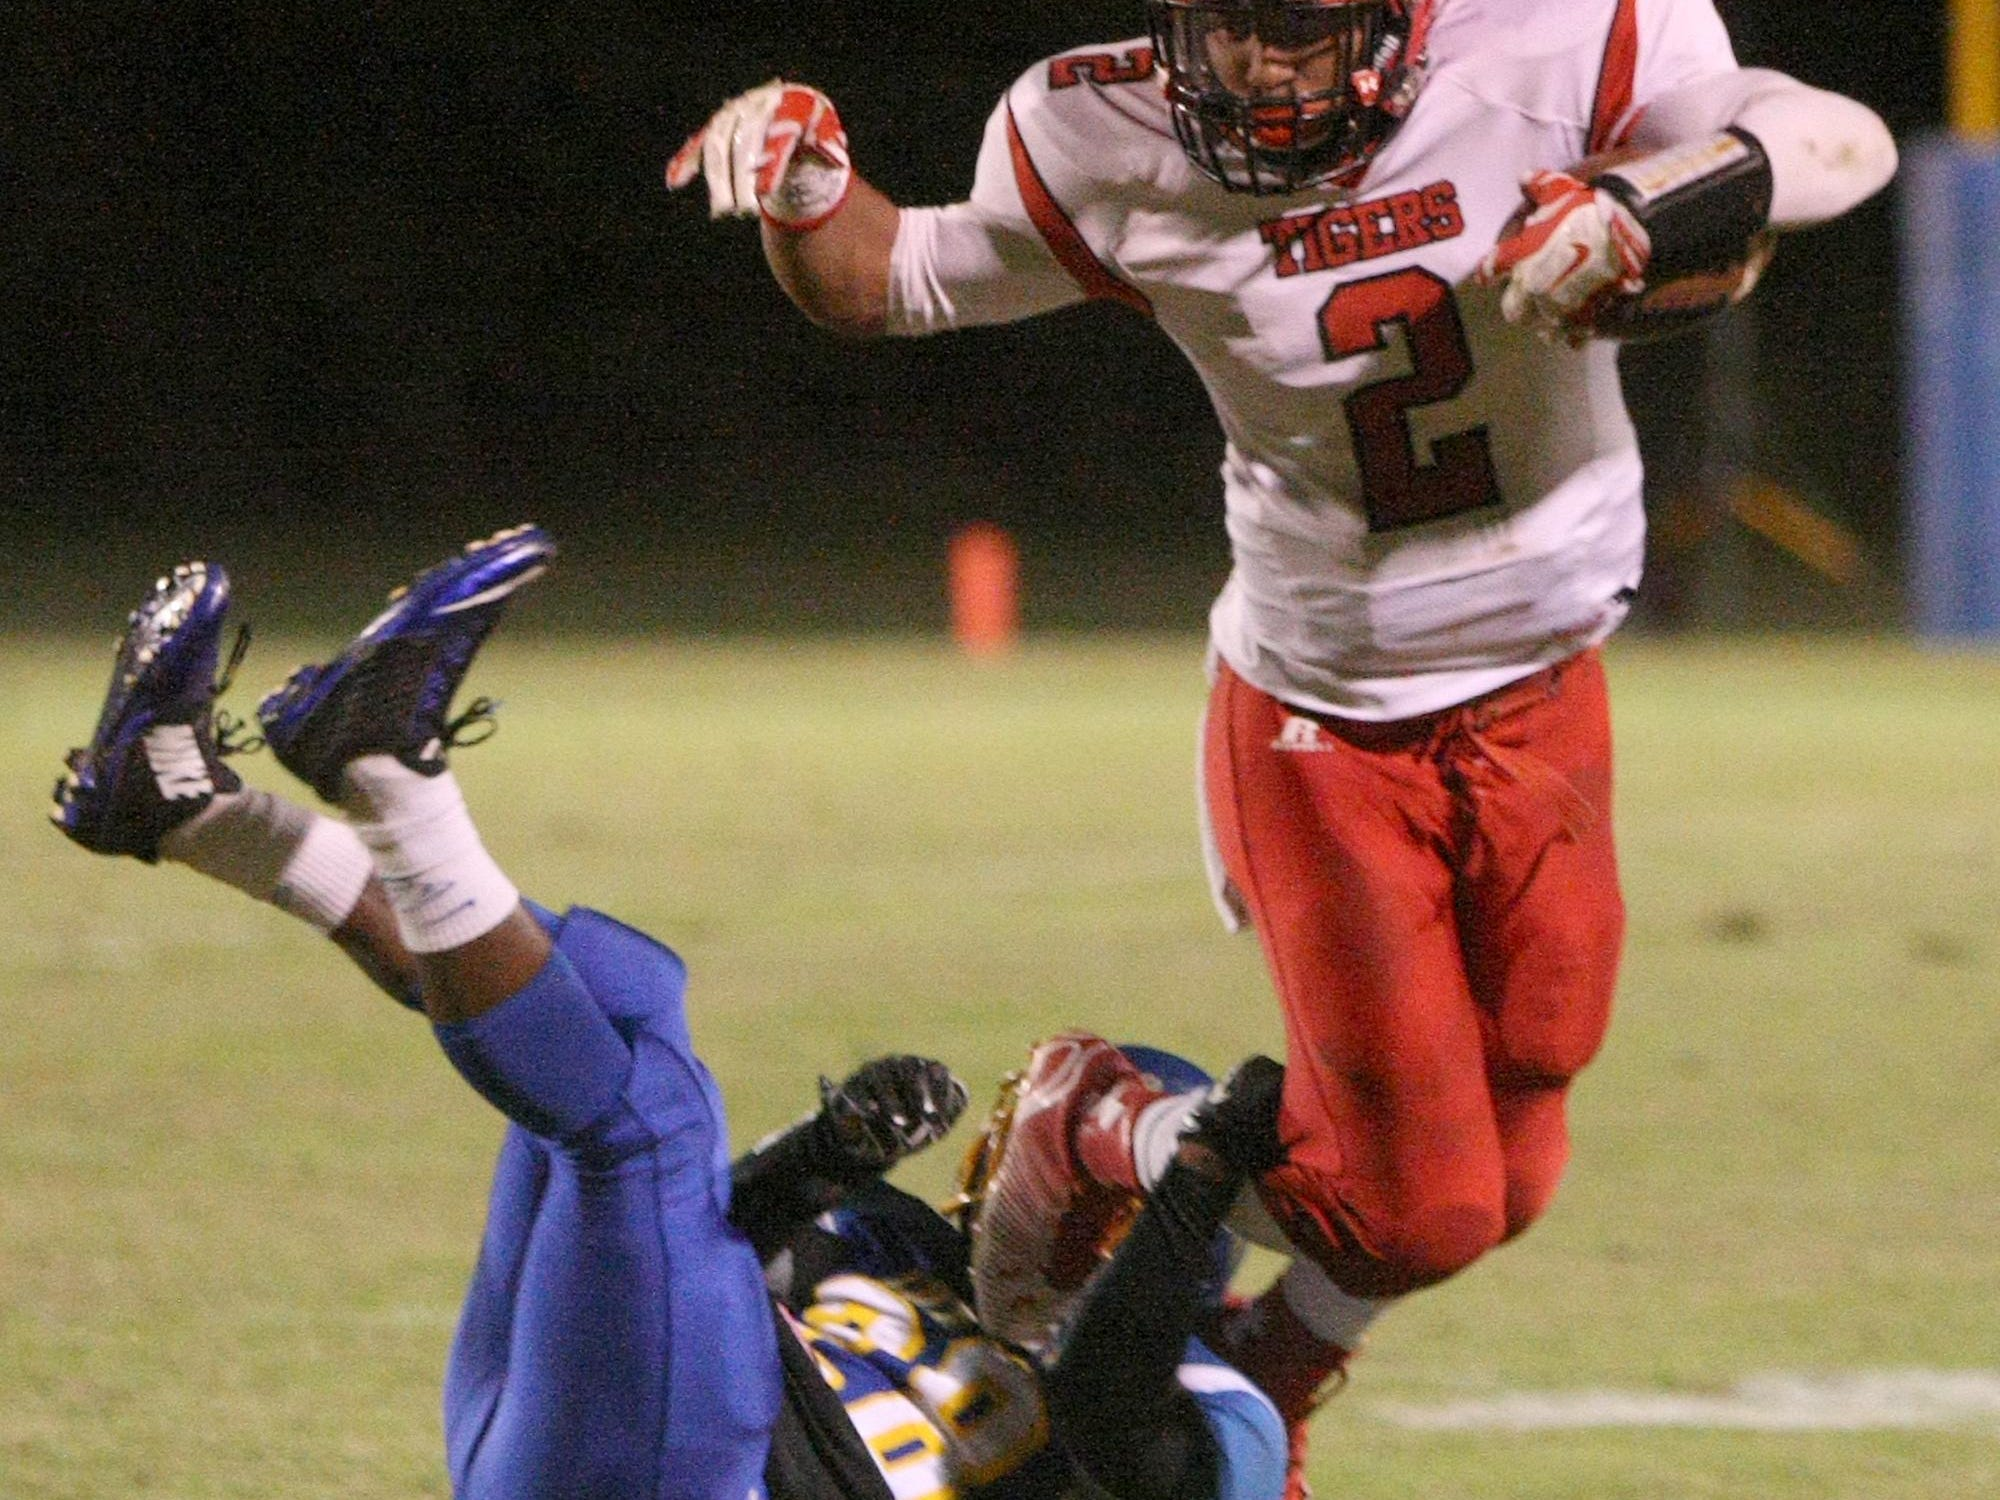 Lexington's Camrion Hollingsworth (2) is brought down by North Side's Randall Boyington (28) on Friday at North Side.